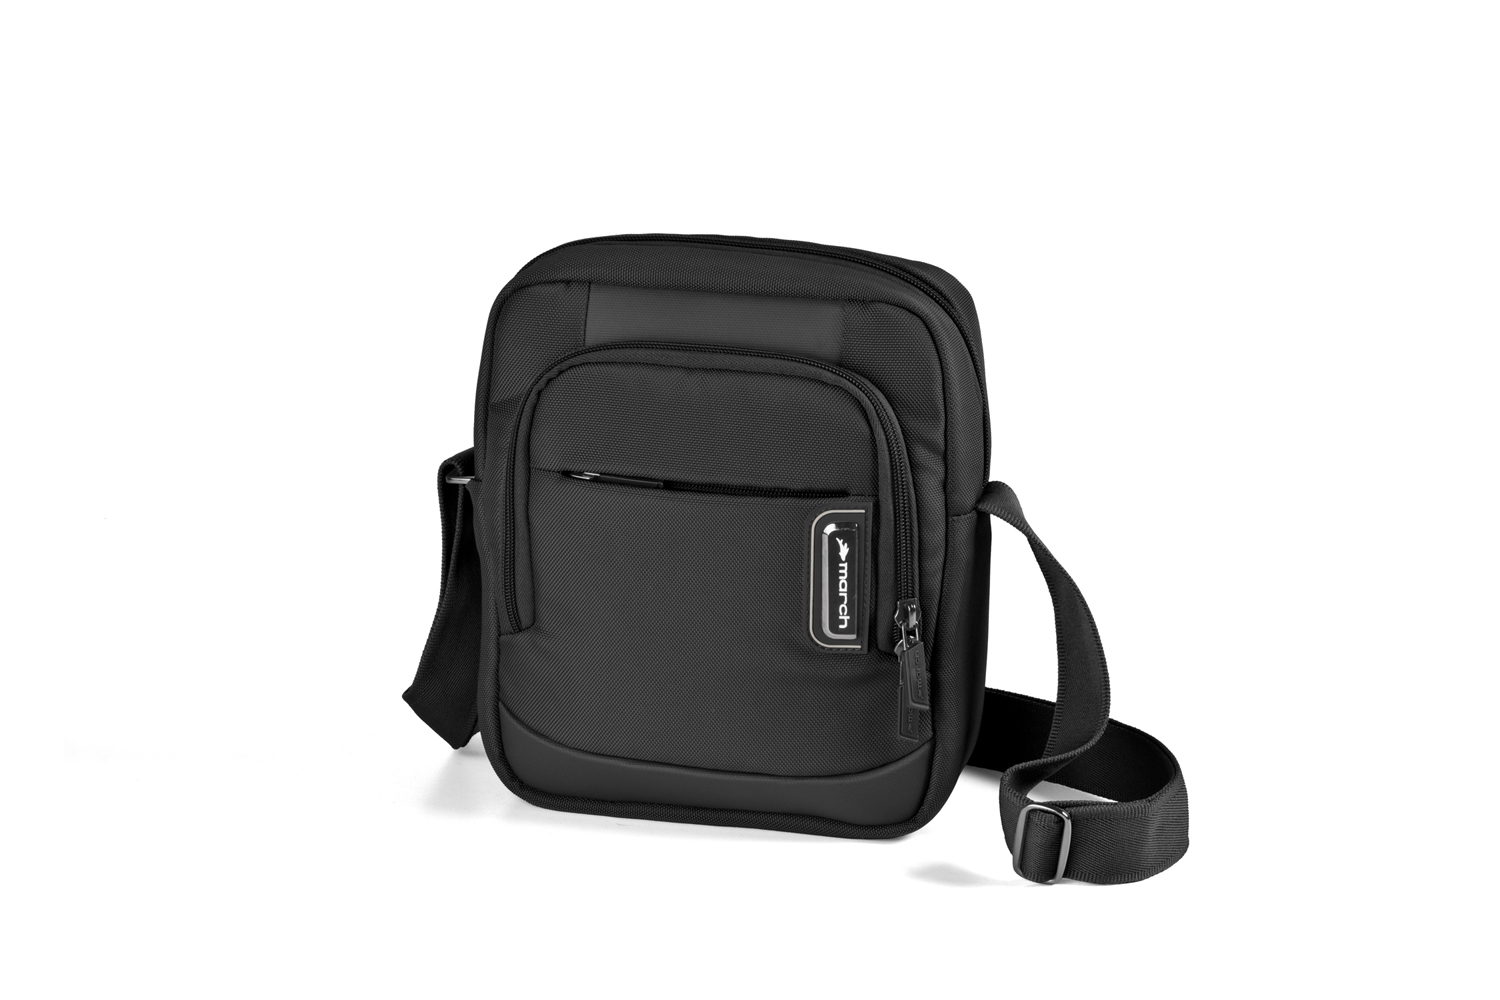 March bags get a'way Schultertasche black 2111-07-02